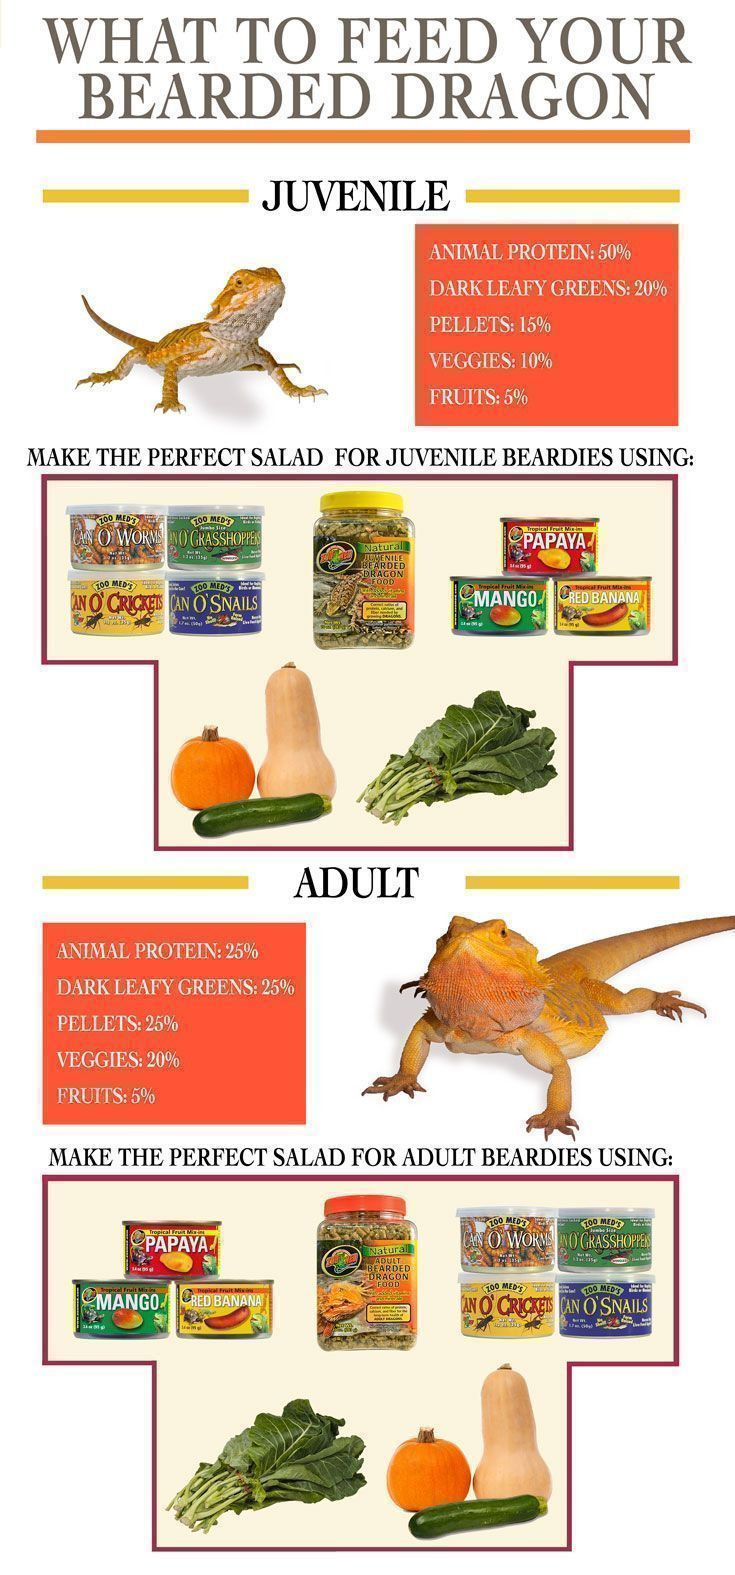 Proper Bearded Dragon Diet at different life stages. Blend a delicious medley of ingredients into a salad that meets all of your beardies needs. Combine dark leafy greens (such as collard), vegetables (such as butternut squash/pumpkin), pellets, Can O' Insects cooked in the can for maximum freshness, and Tropical fruit mix-ins. Don't forget to add Repti Calcium/ReptiVite to keep your pet healthy! #beardeddragon